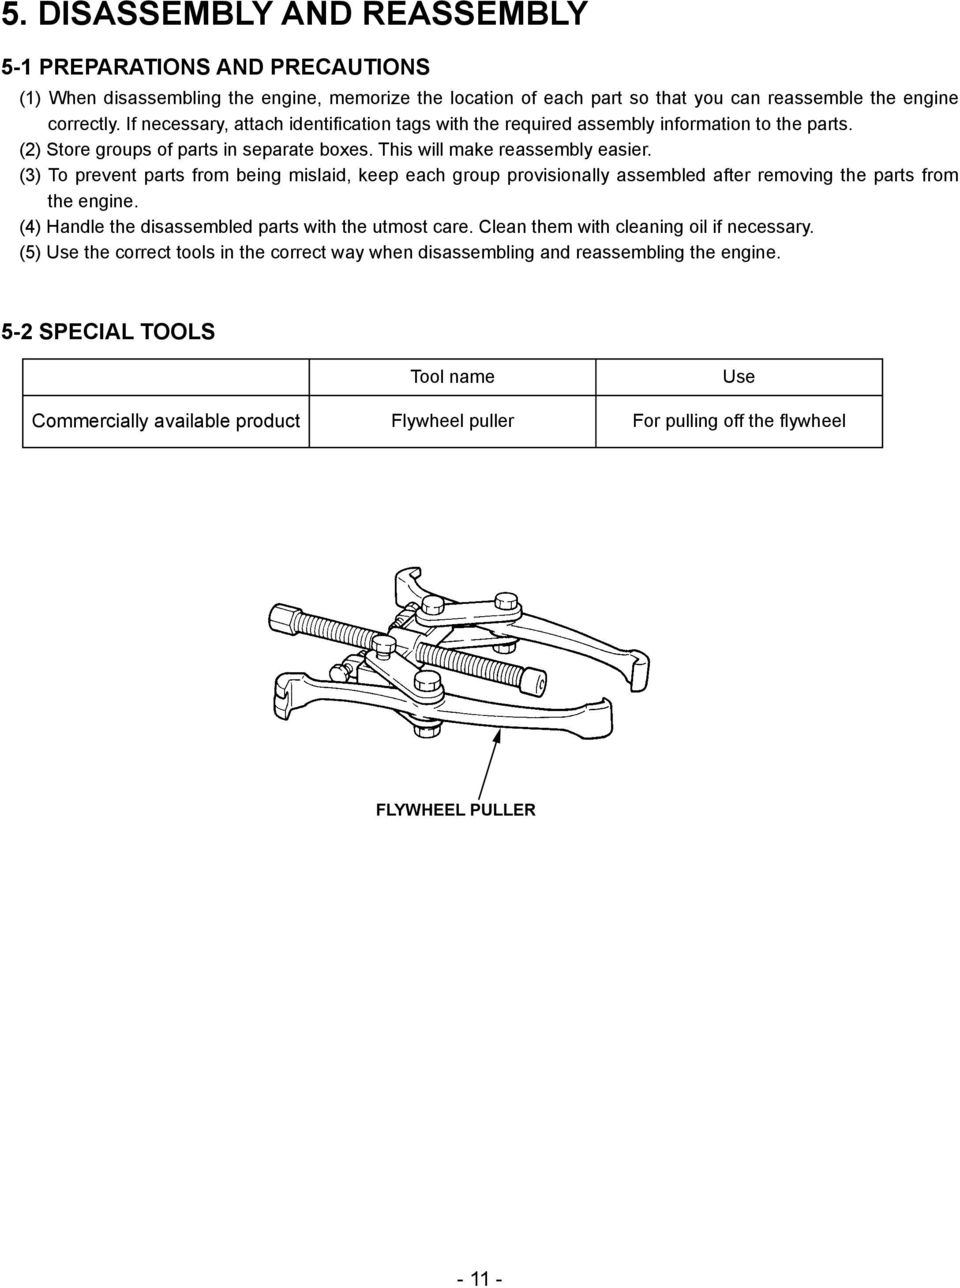 Service Manual Ex30 Engines Model Pub Es2268 Rev 10 06 Pdf 5 2 Engine Diagram 3 To Prevent Parts From Being Mislaid Keep Each Group Provisionally Assembled After